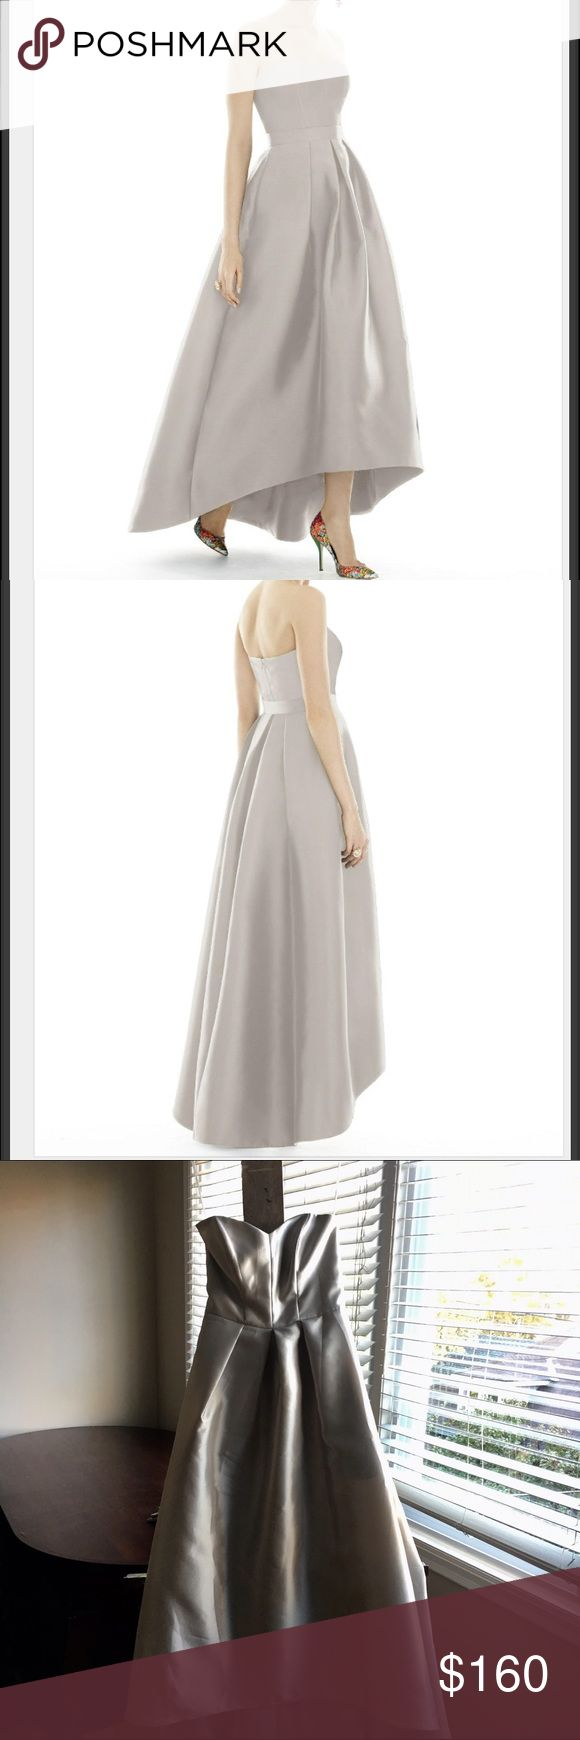 Gorgeous Alfred Sung Hi-Low Dress in Oyster Worn once! This oyster colored designer hi-low dress is perfect for a wedding, event or any dressy occasion. It has a gorgeous shape and fit. Open to answer any questions and returns. Original link: https://dessy.com/dresses/bridesmaid/d699/#.WAgq_IY8KEc Alfred Sung Dresses High Low